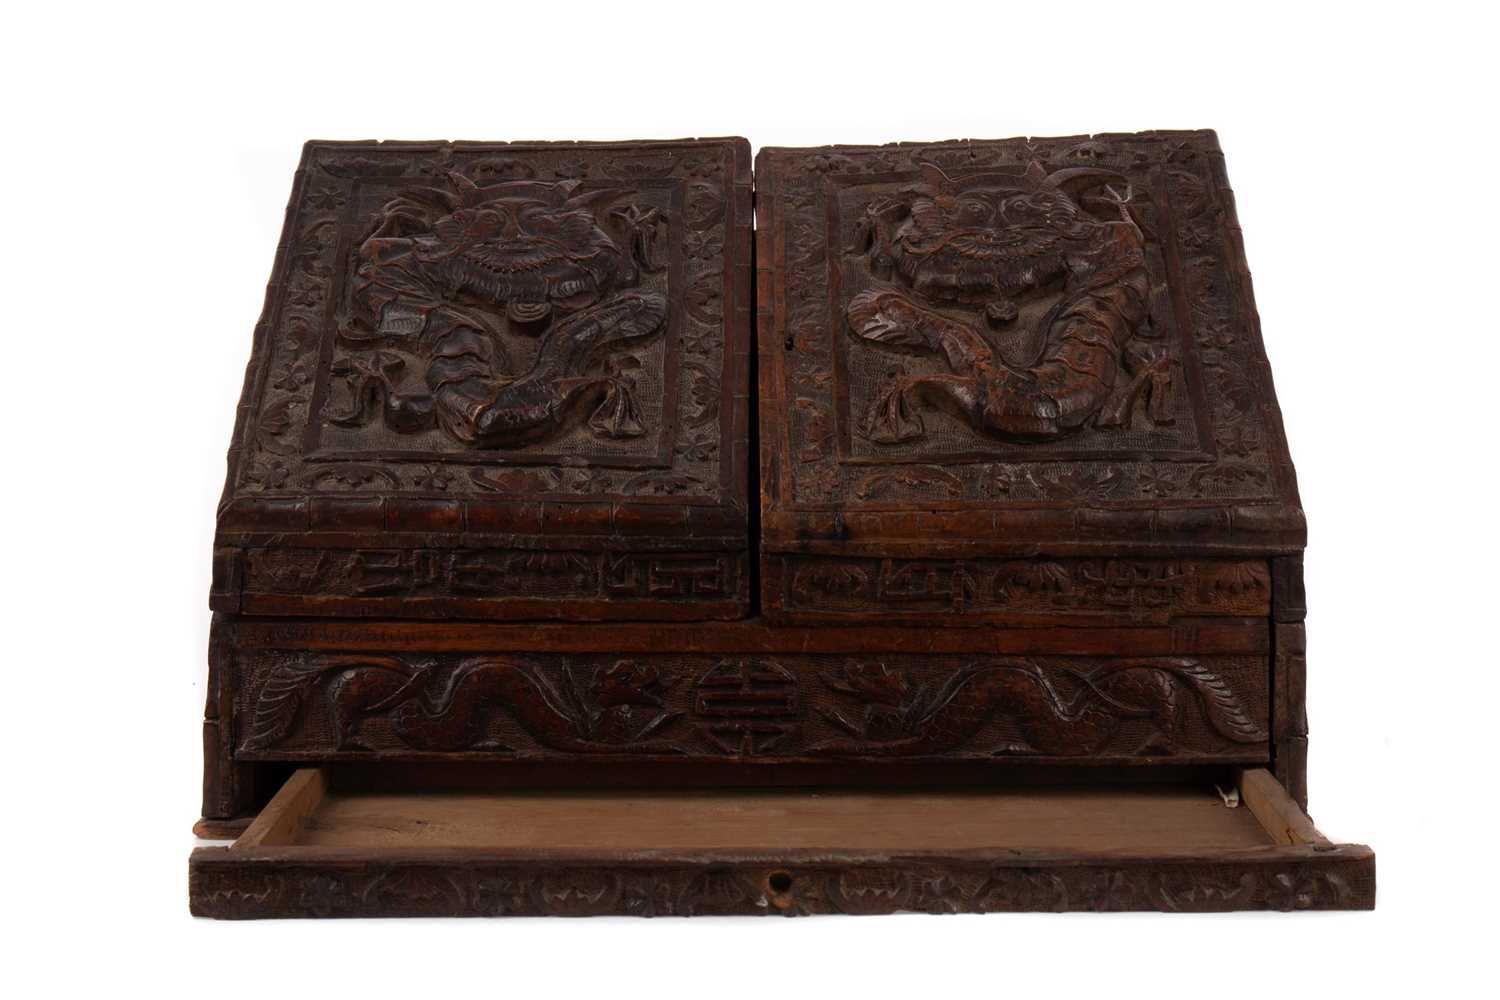 Lot 1607 - AN EARLY 20TH CENTURY CHINESE CARVED WOOD STATIONARY BOX